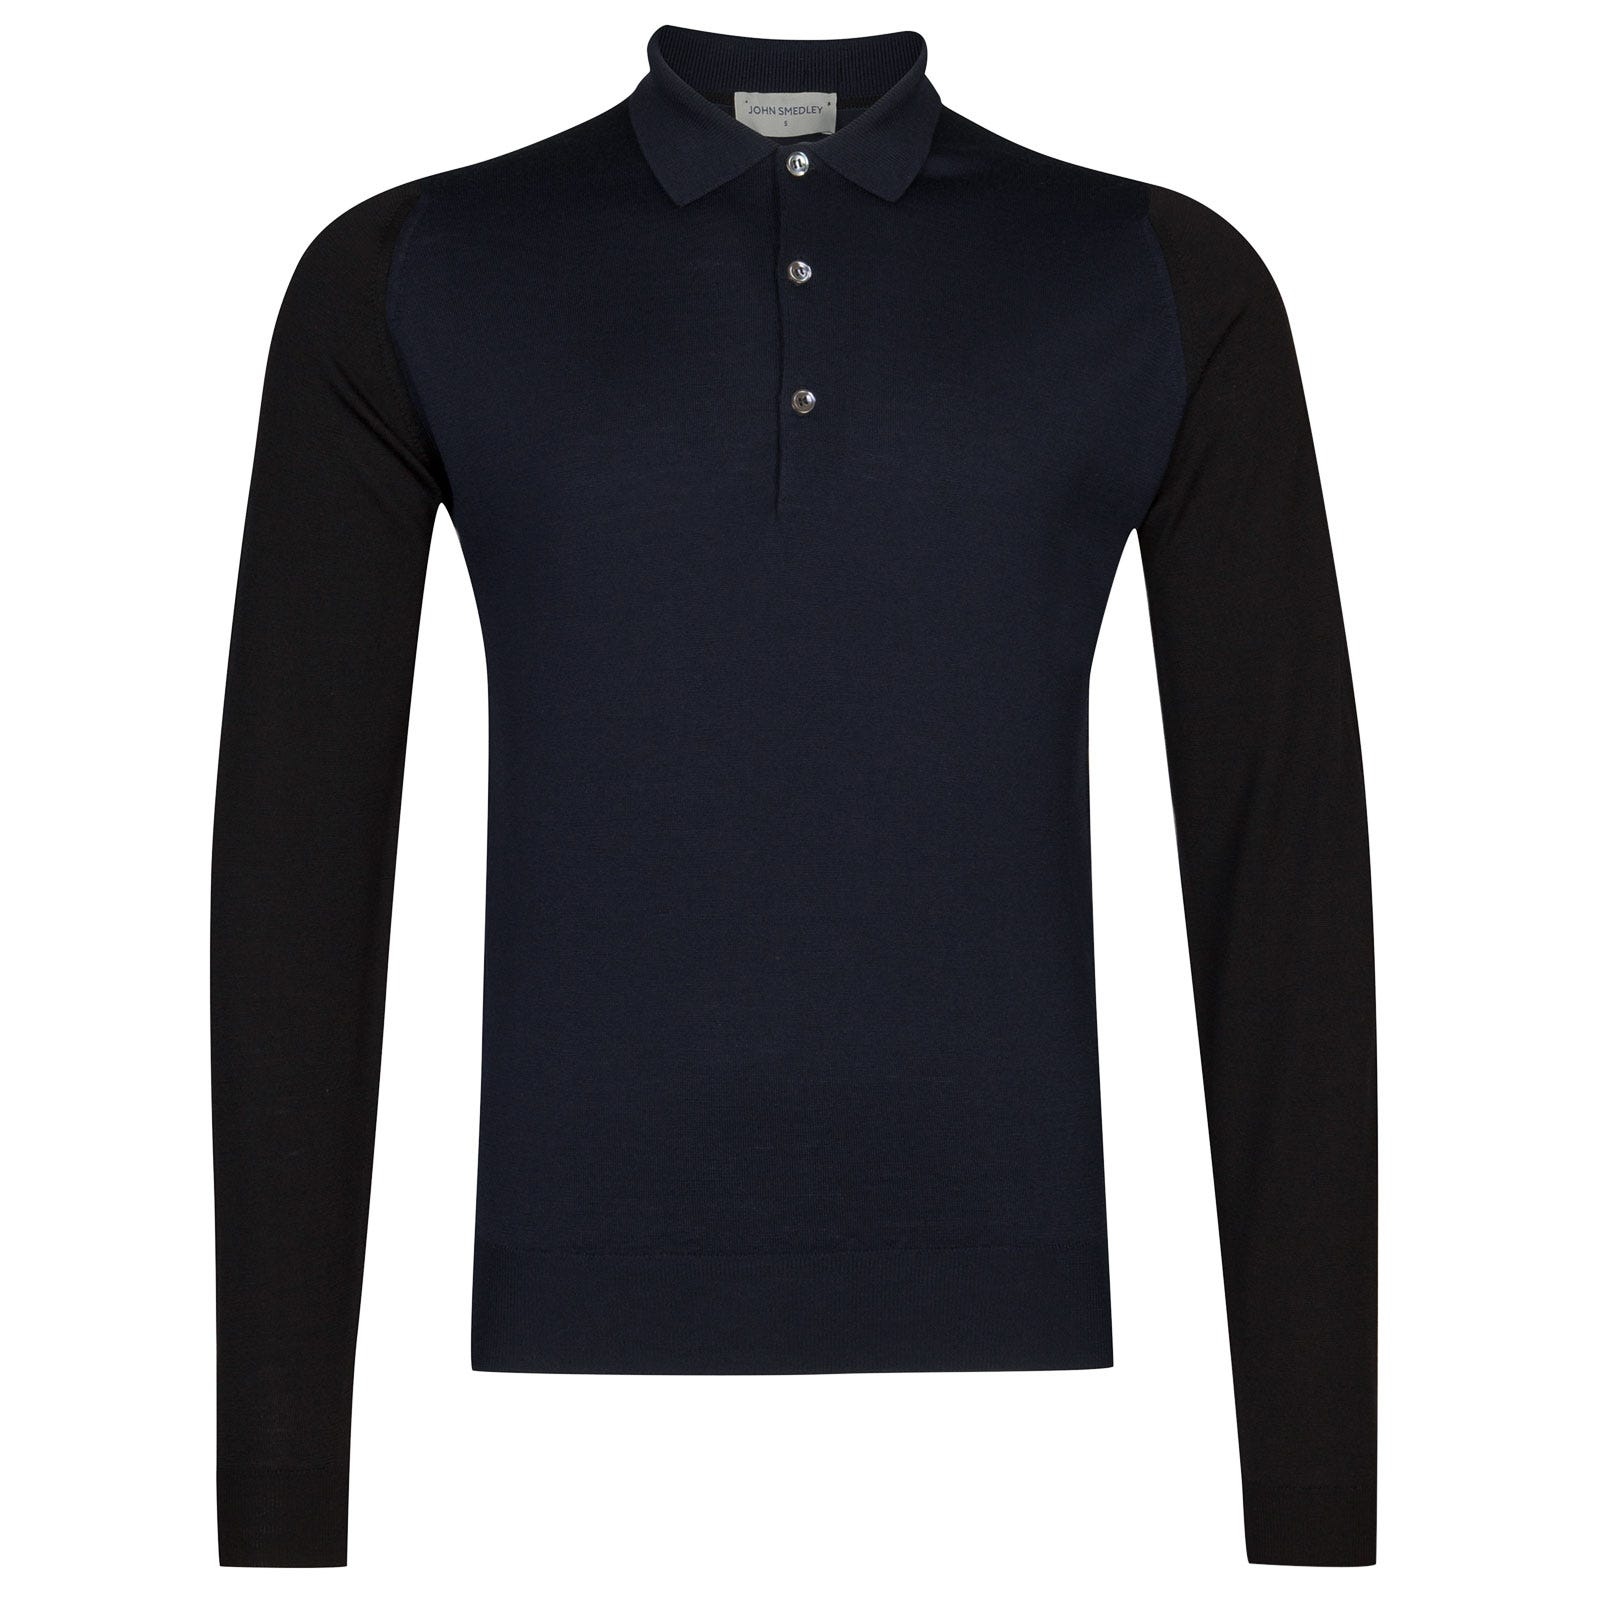 John Smedley Brightgate Merino Wool Shirt in Black/Midnight-XL